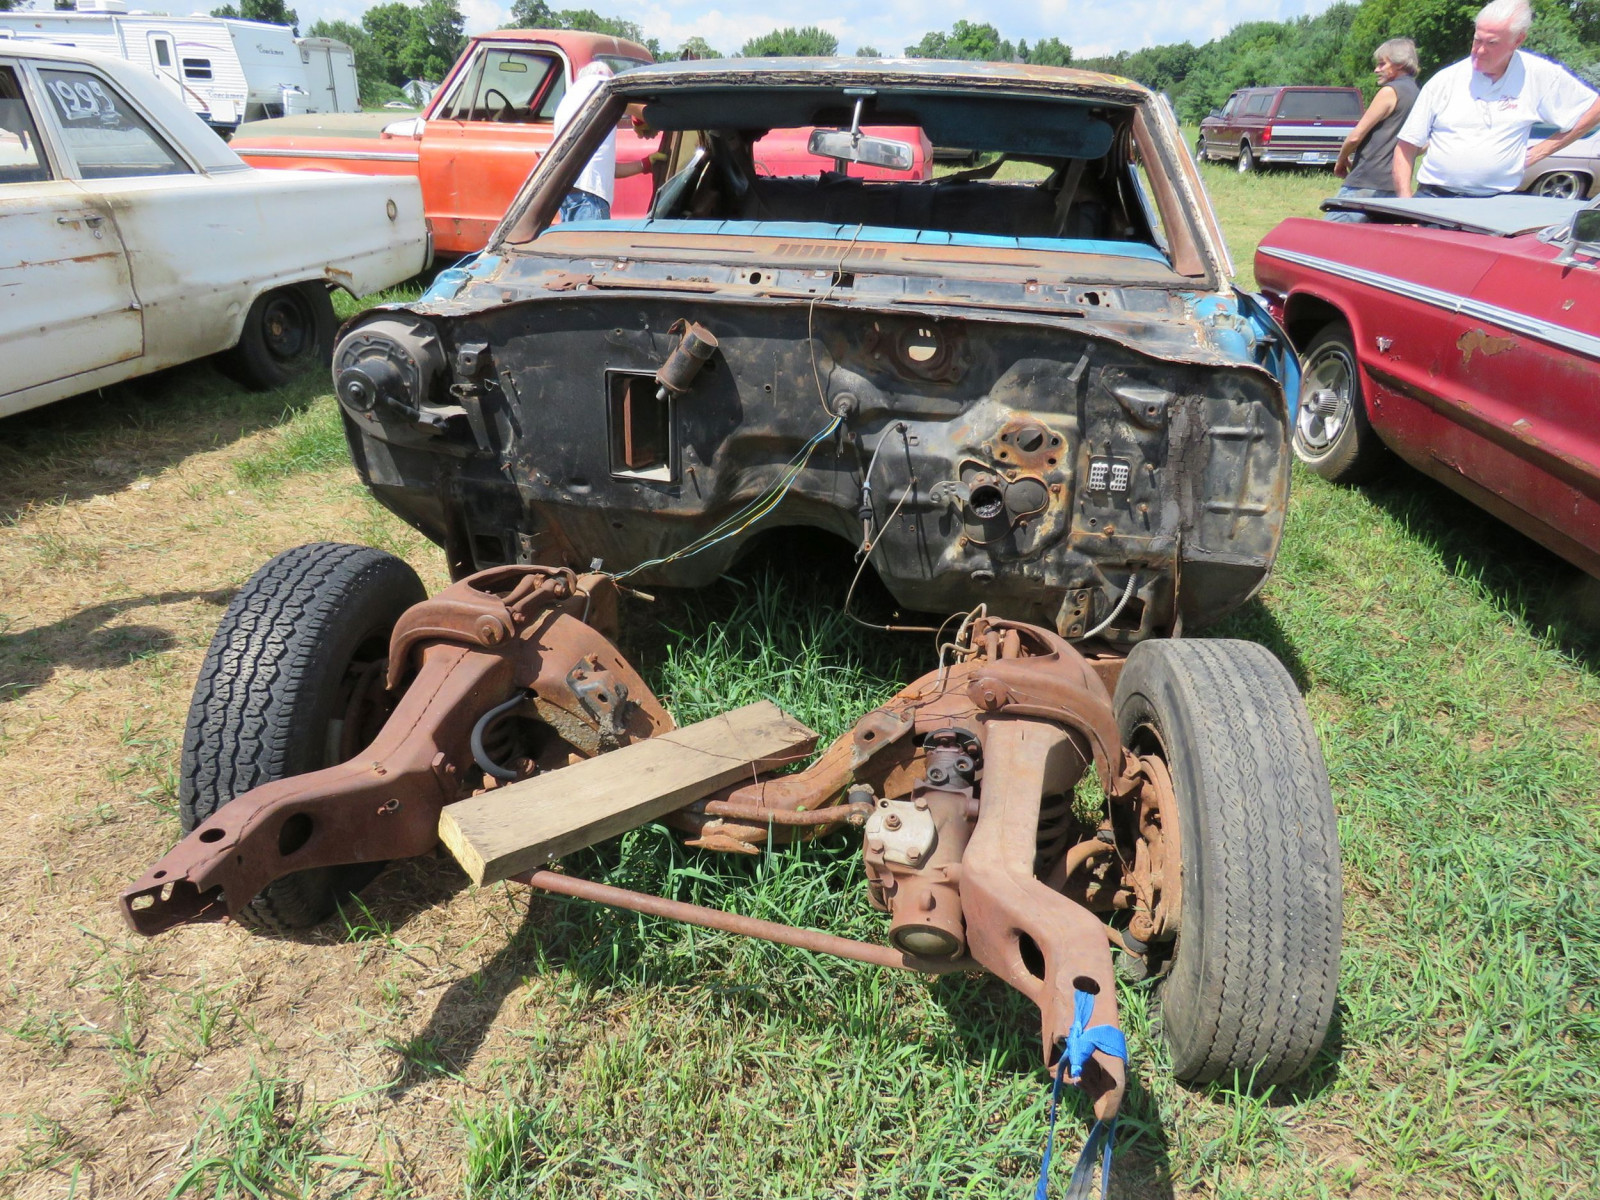 1969 Chevrolet Chevelle Rolling Body for Project or Parts - Image 2